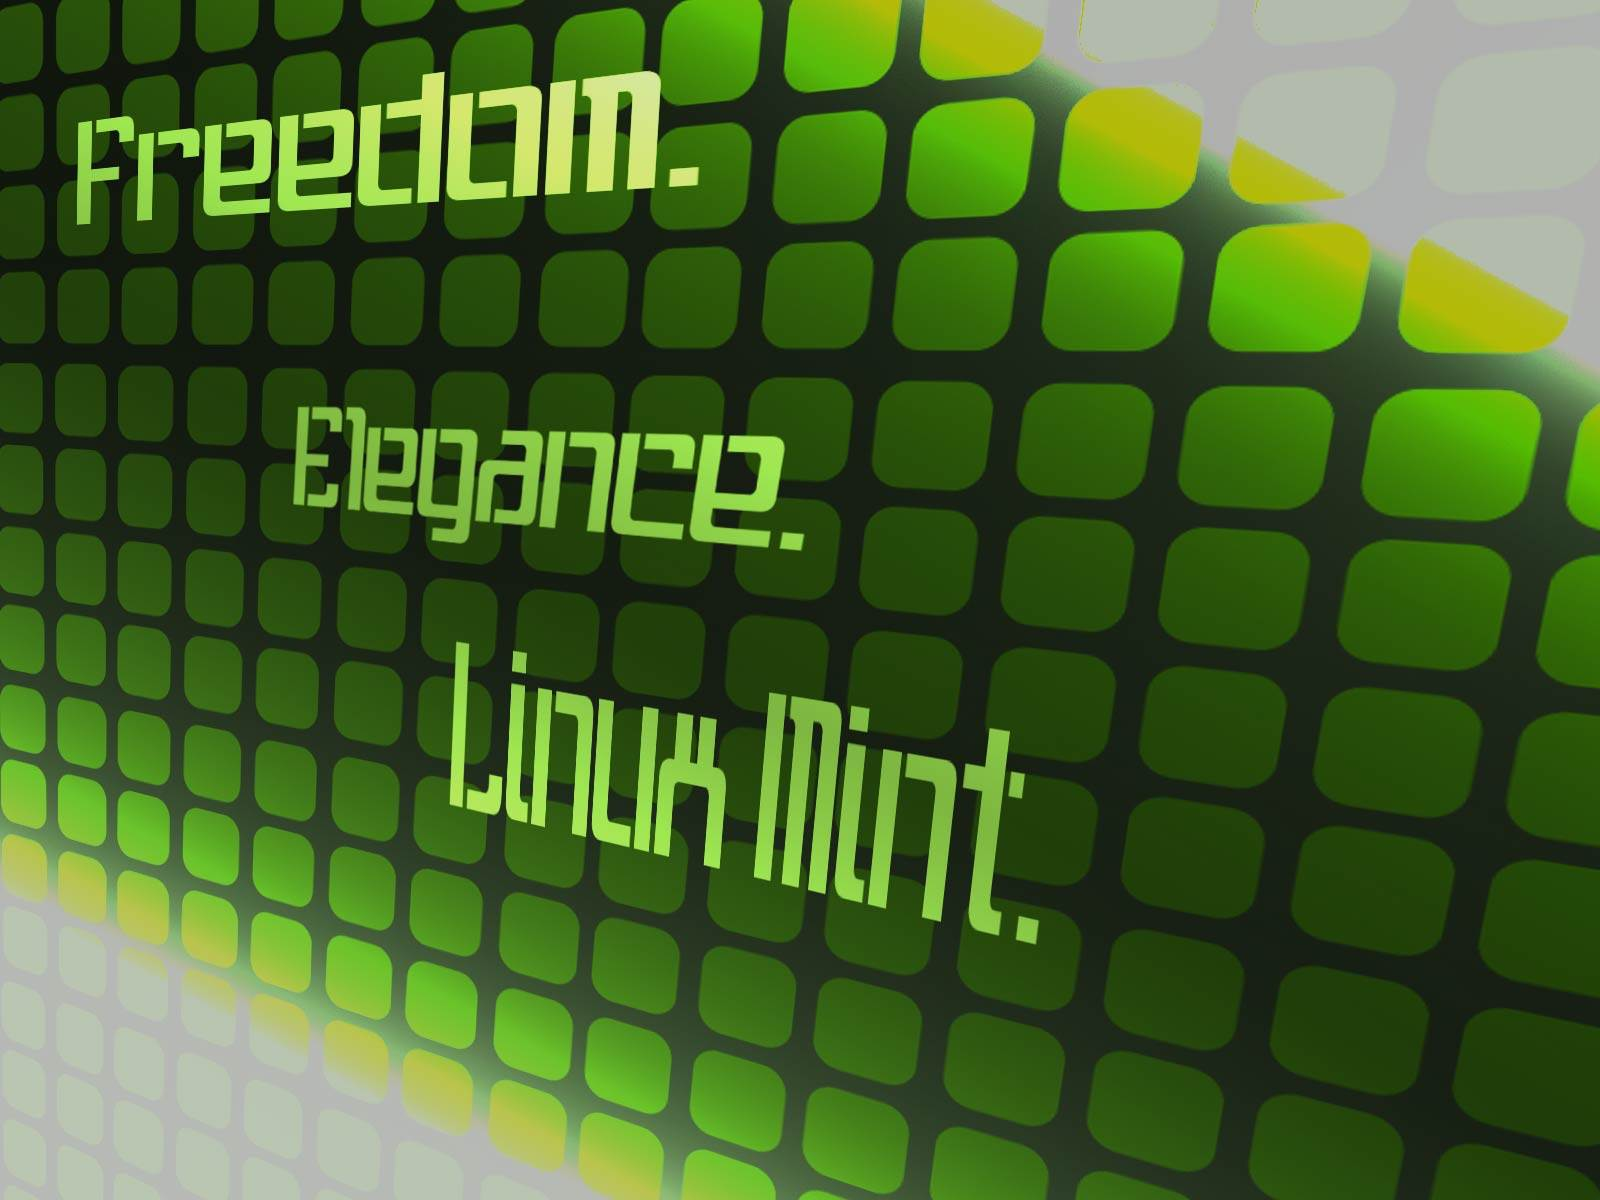 Wallpapers Backgrounds   Linux Mint Abstract Desktop Background 1600x1200